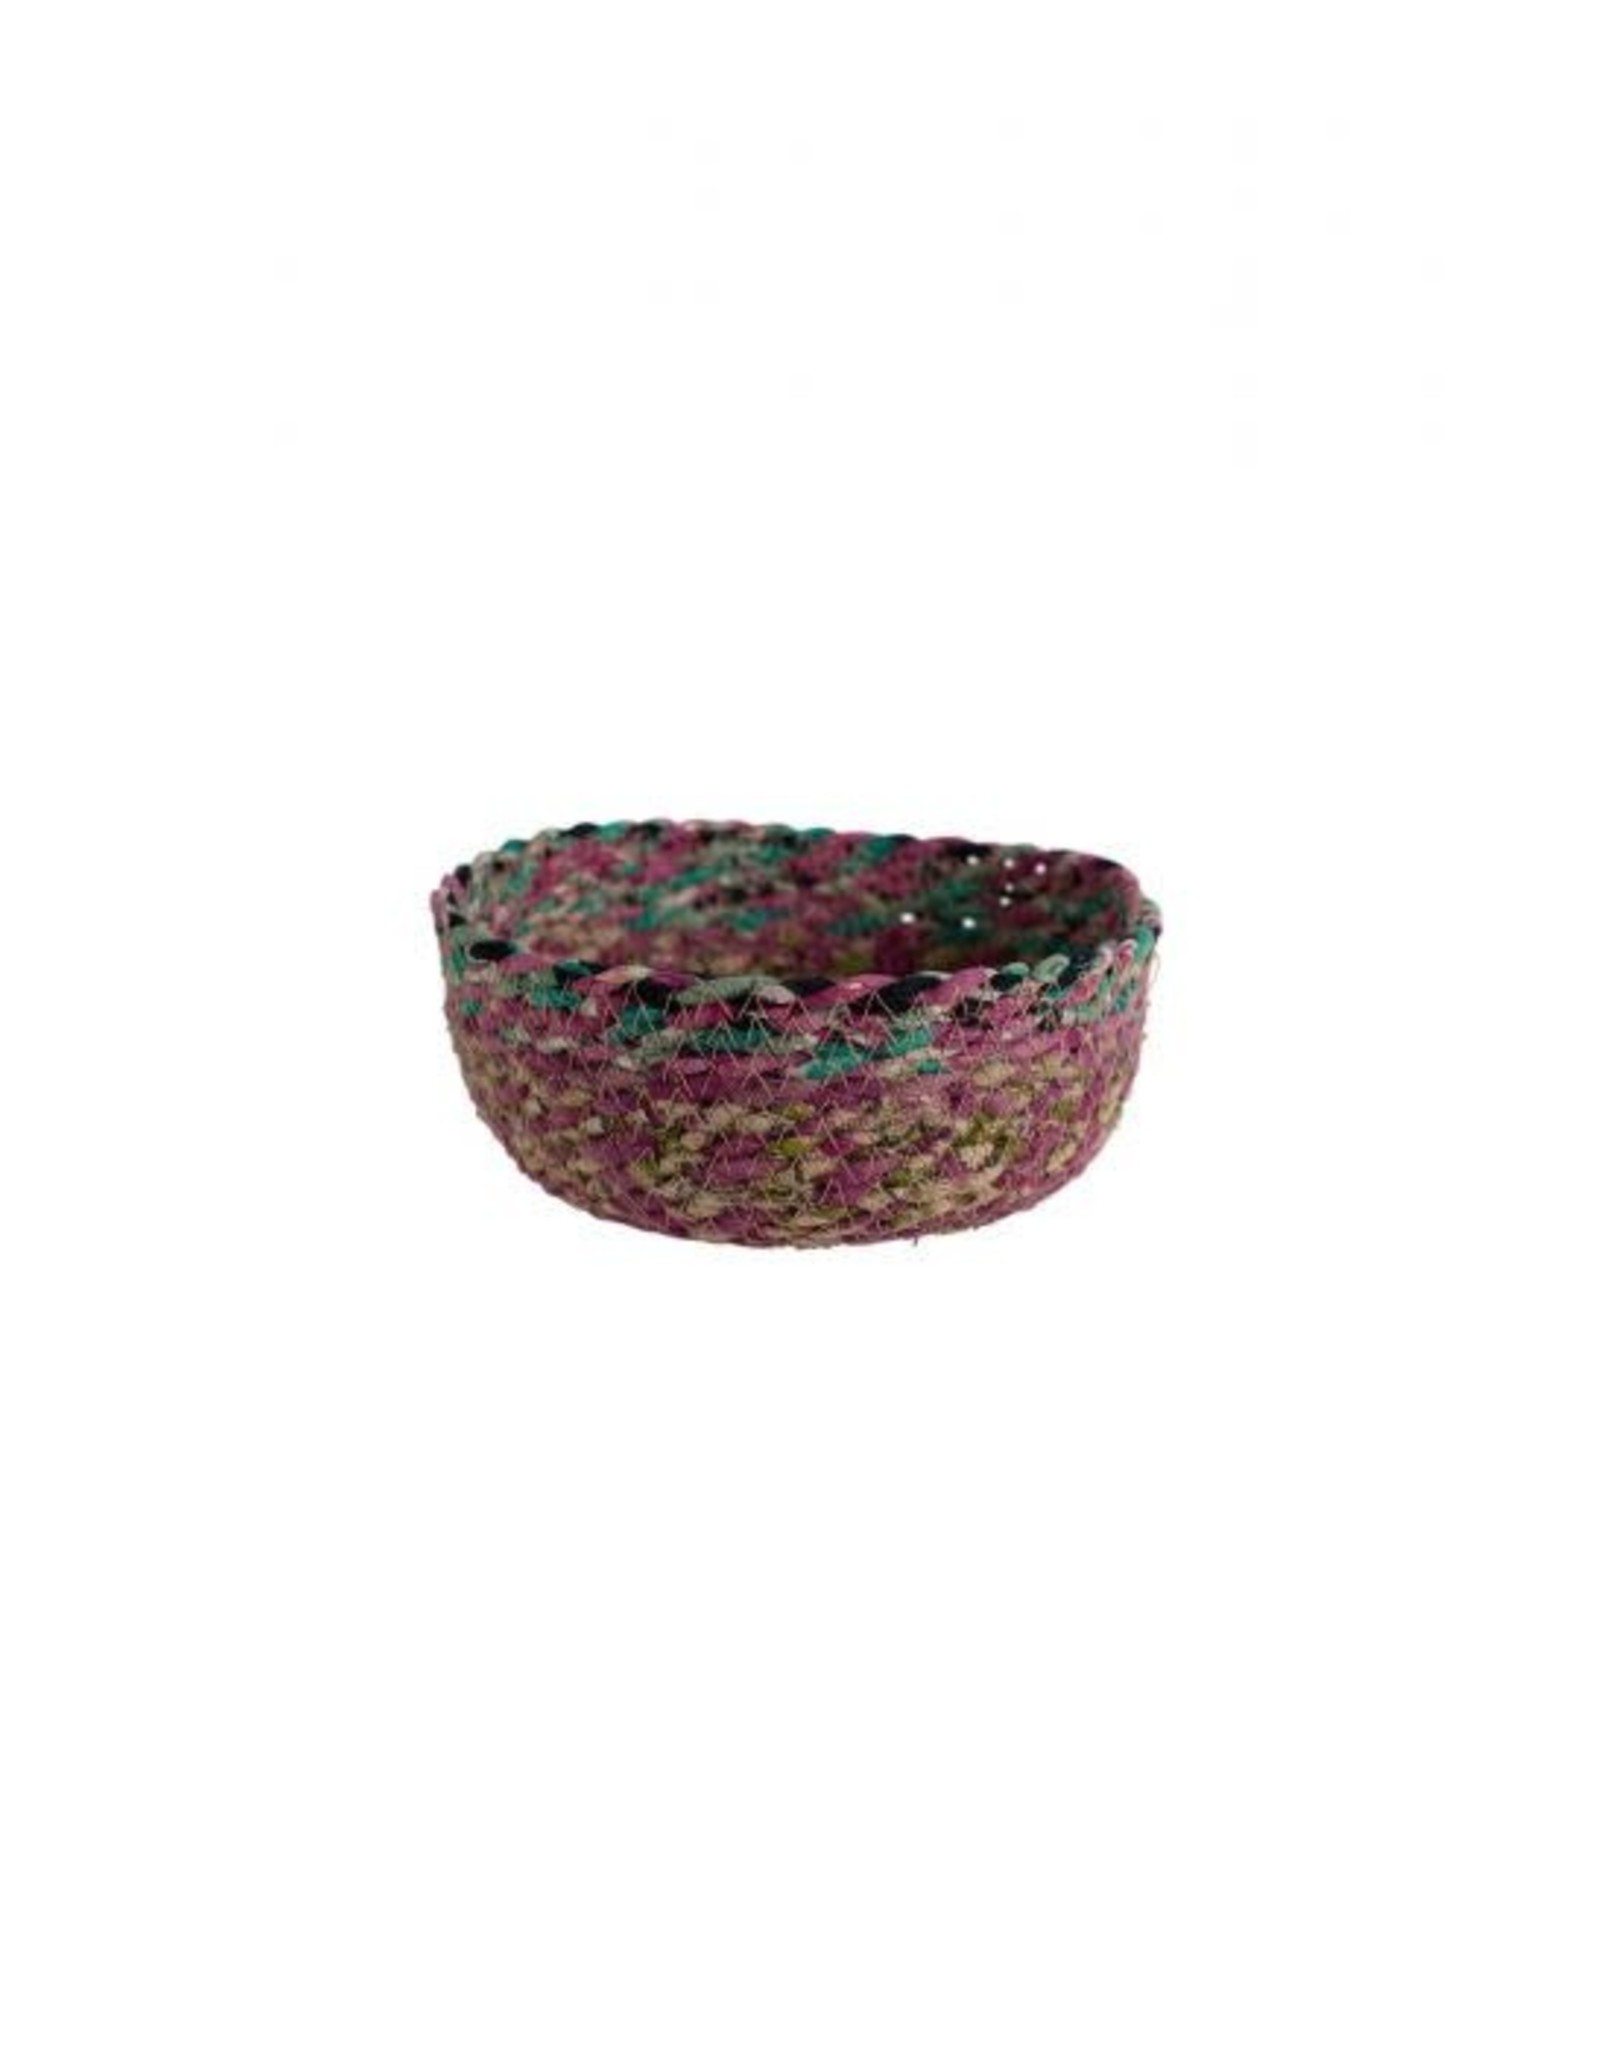 TTV USA Swirling Sari Basket  Small (Assorted Colours)